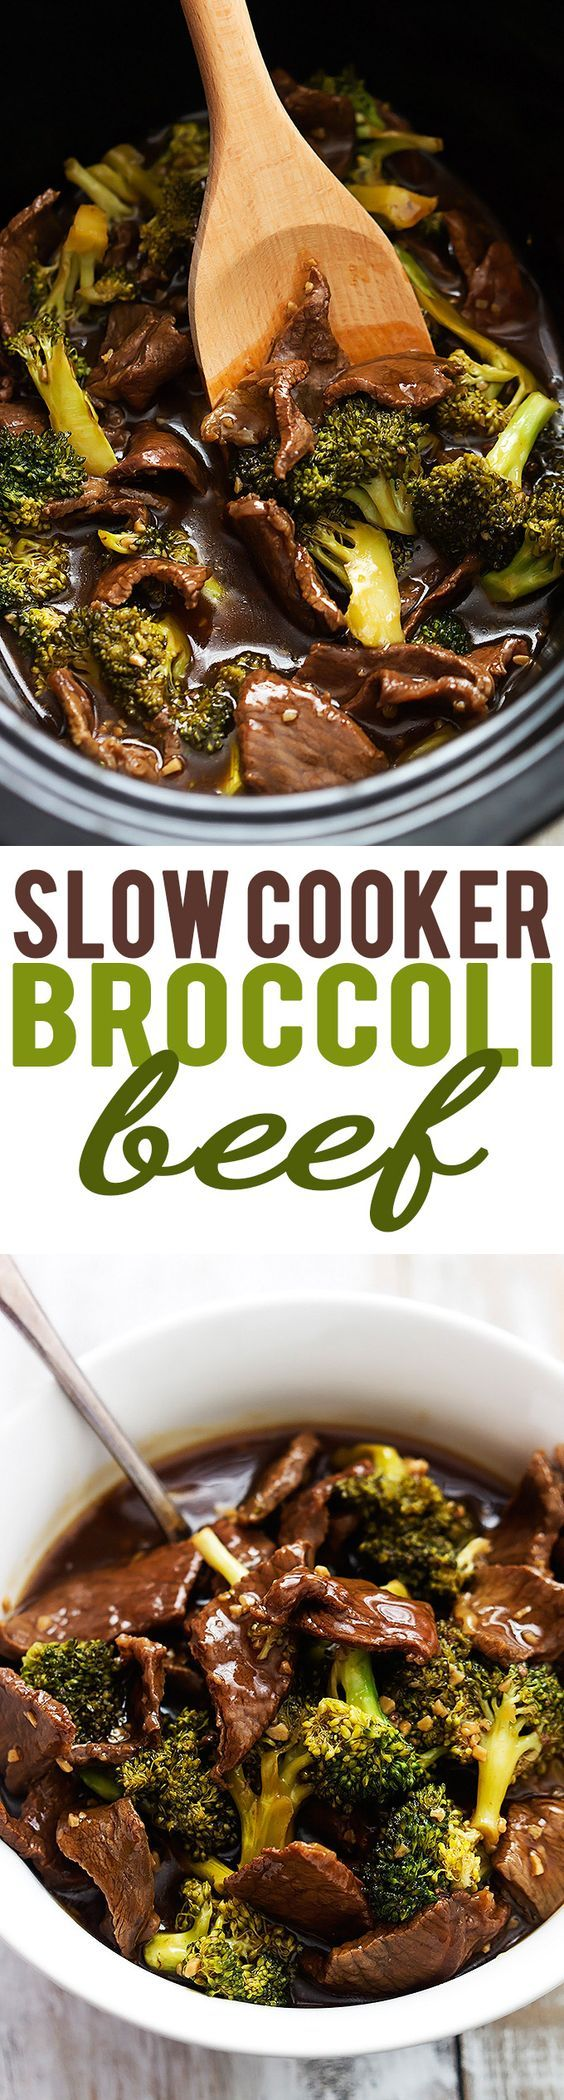 Slow Cooker Broccoli Beef Recipe plus 49 of the most pinned crock pot recipes